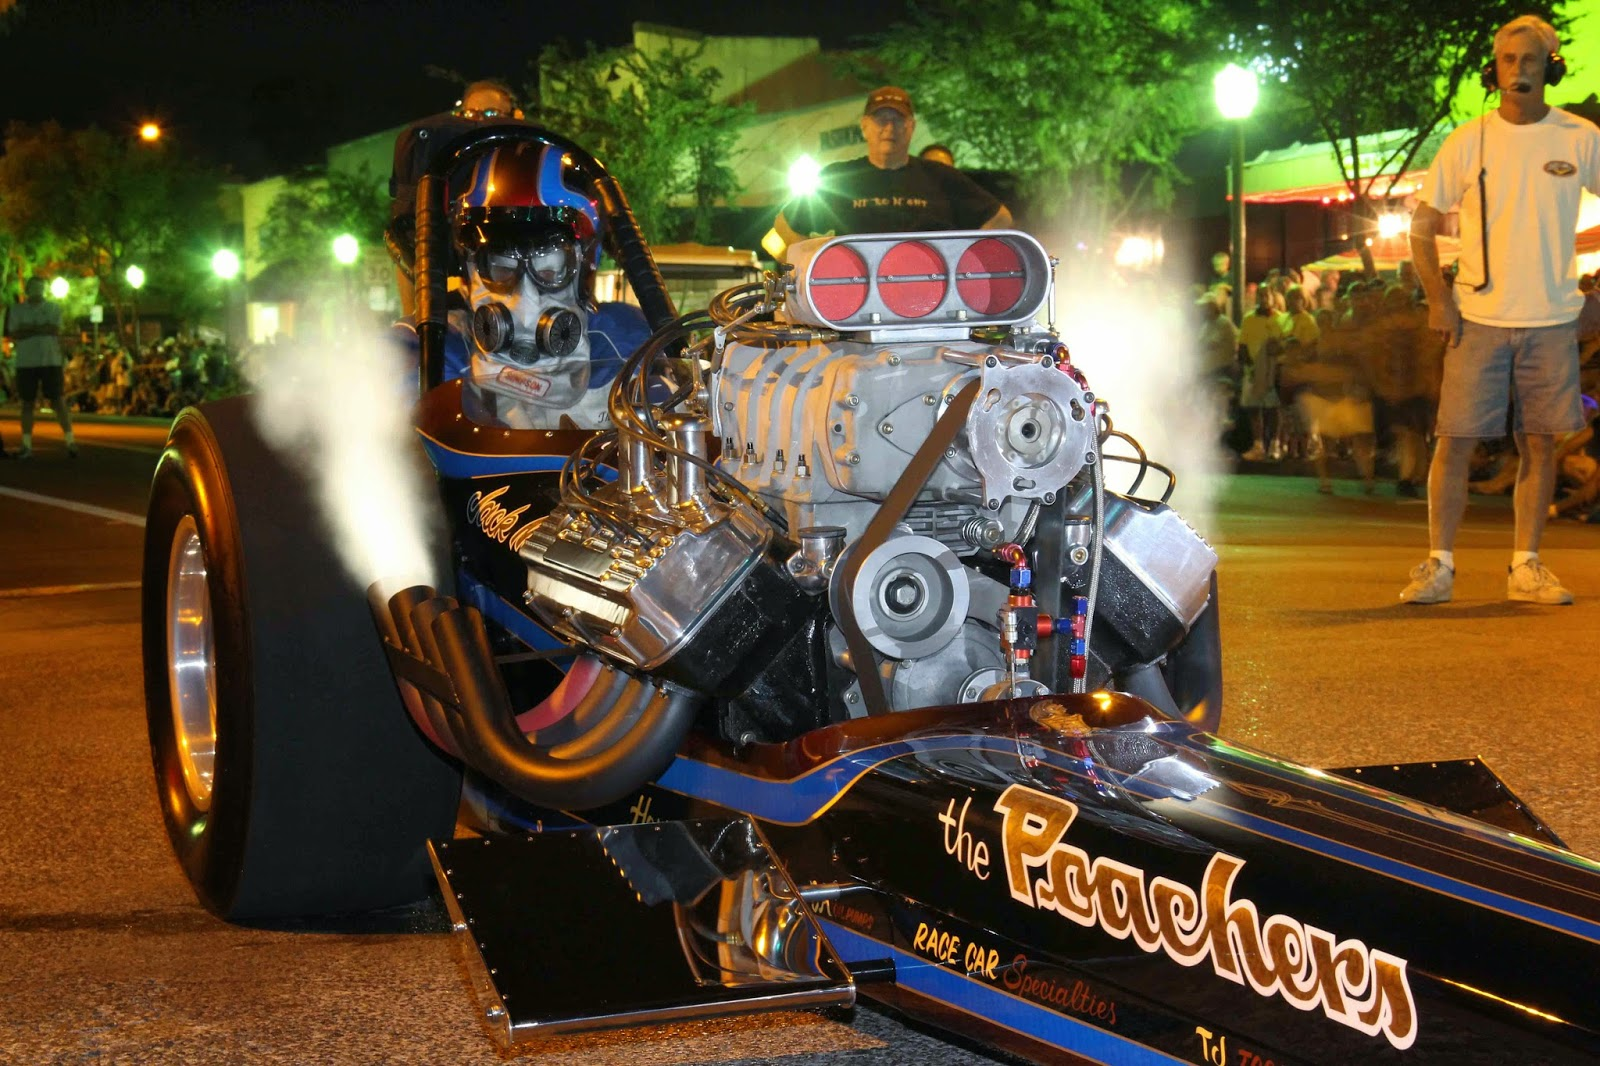 Poachers Top Fuel Dragster